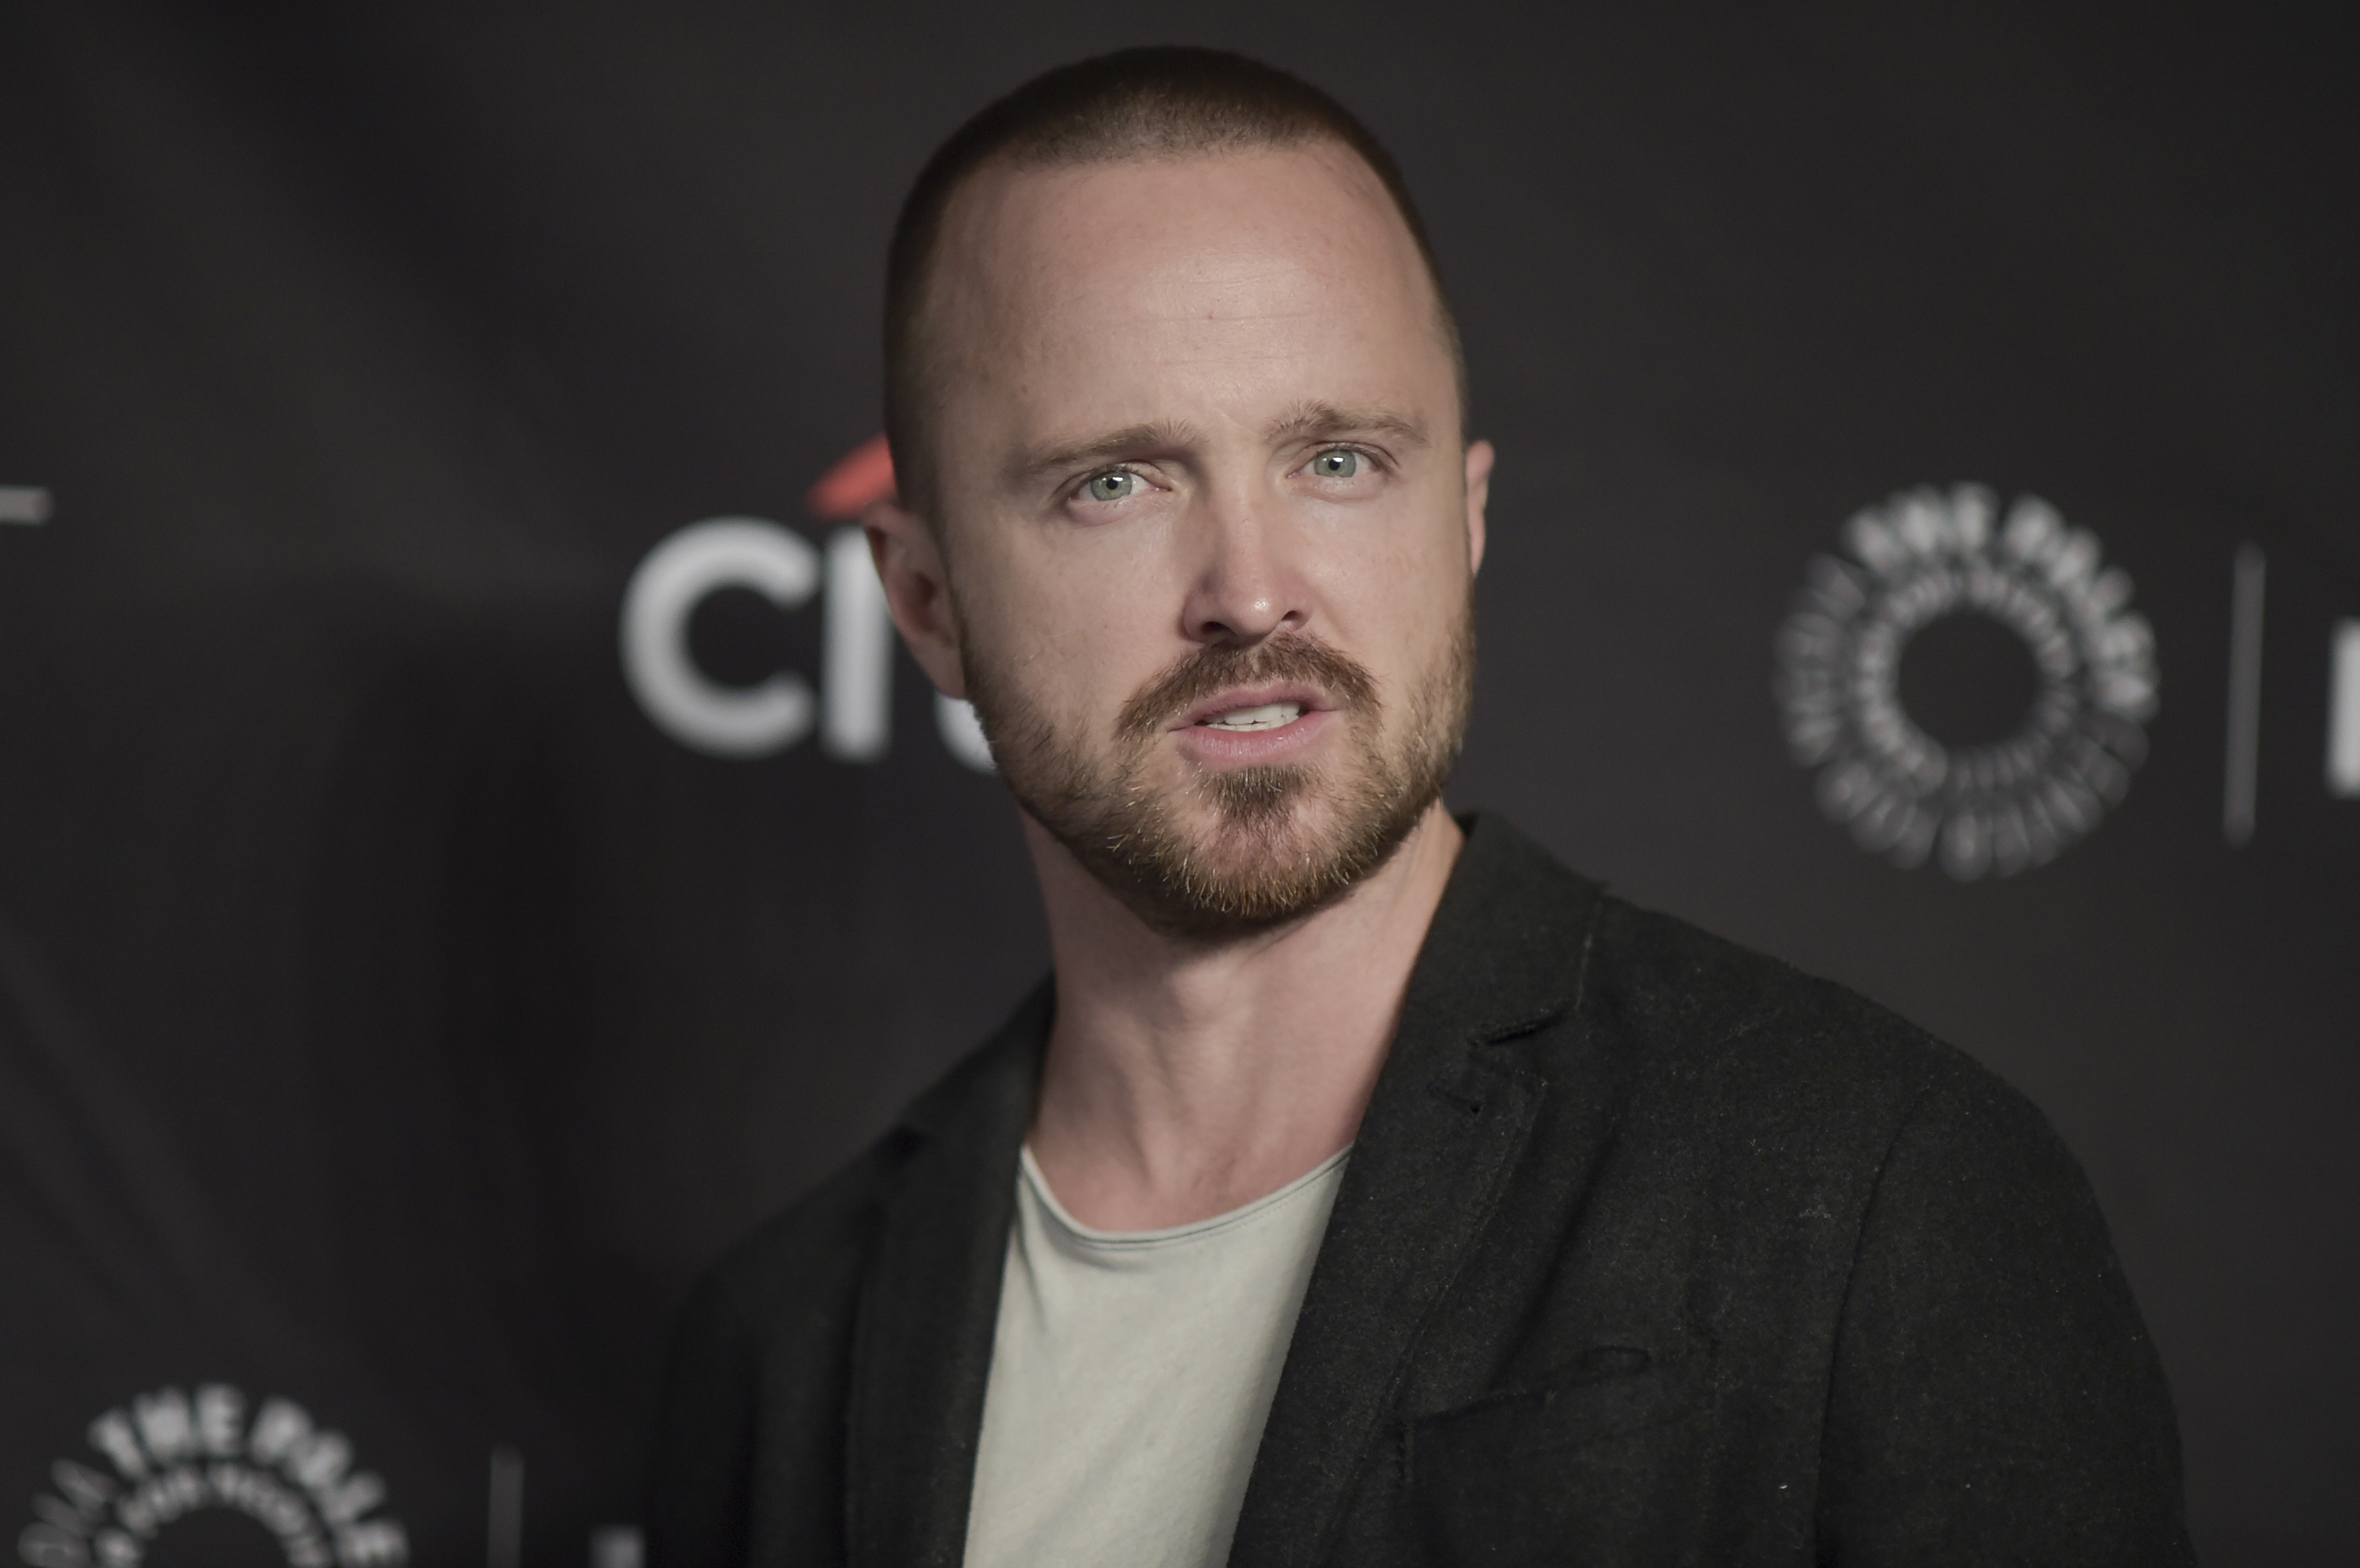 """Aaron Paul attends the 2018 PaleyFest Fall TV Previews """"BoJack Horseman"""" at The Paley Center for Media on Thursday, Sept. 6, 2018, in Beverly Hills, Calif. (Photo by Richard Shotwell/Invision/AP)"""